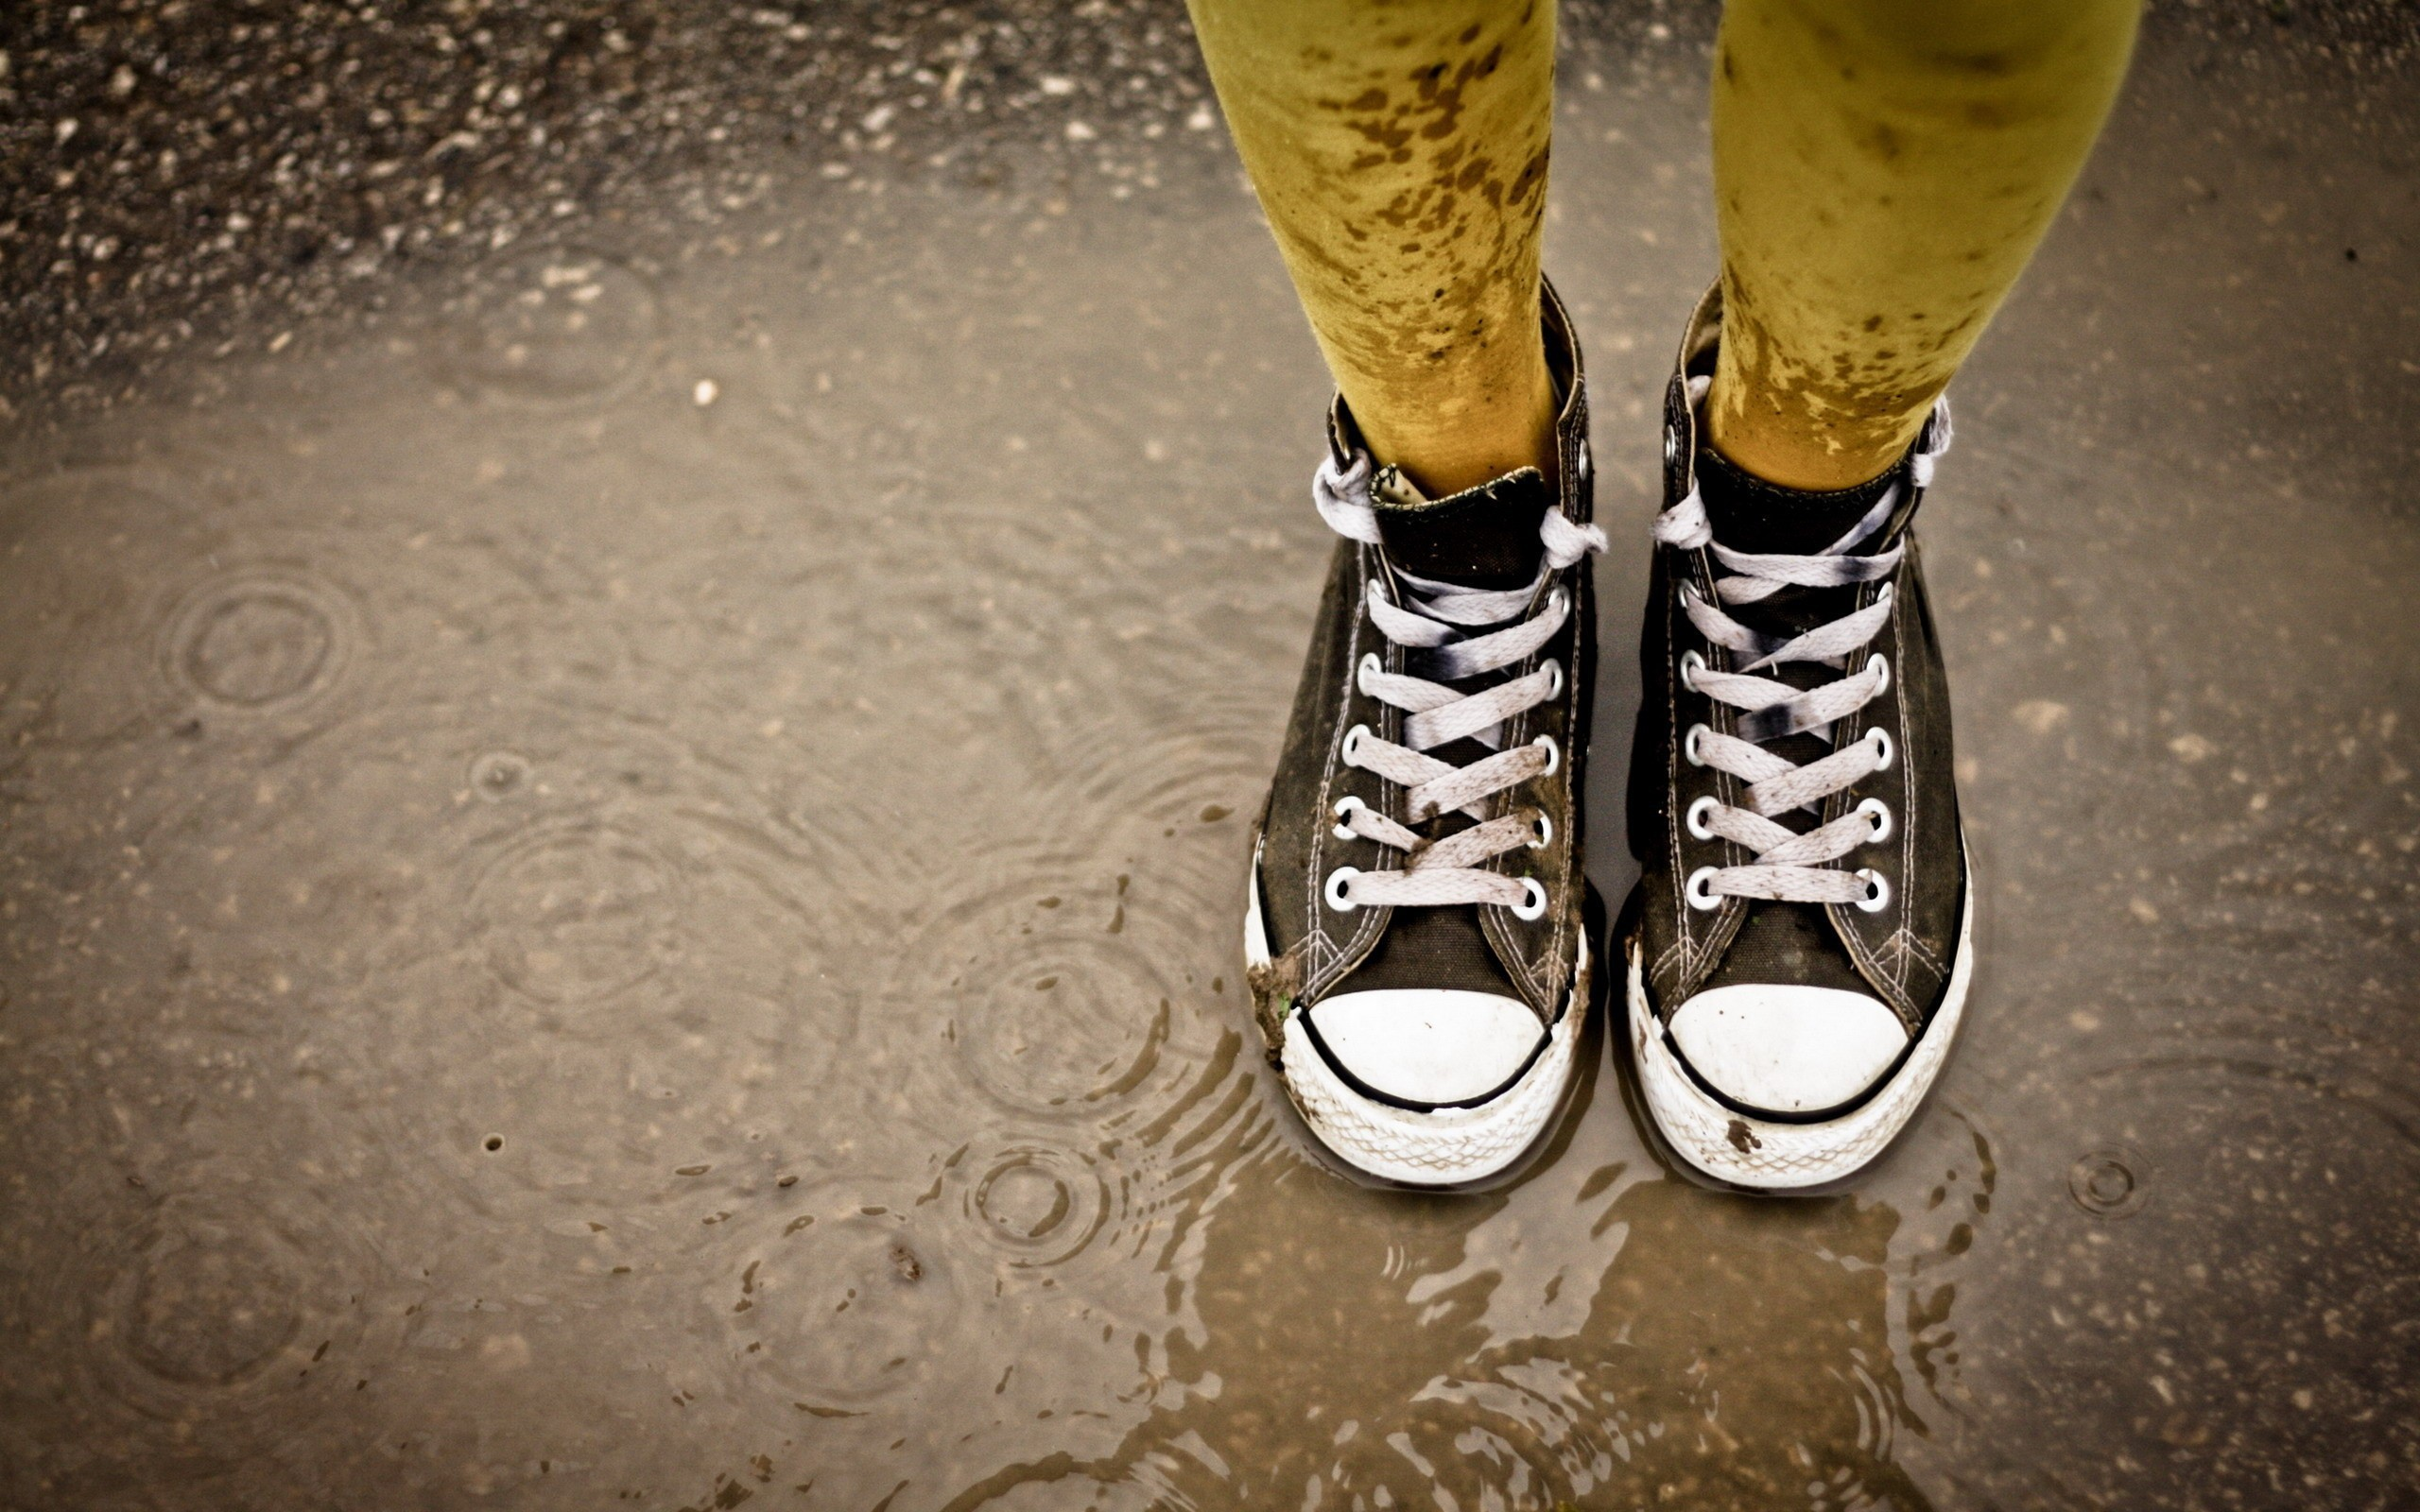 converse shoes in a circle wallpaper 2160p